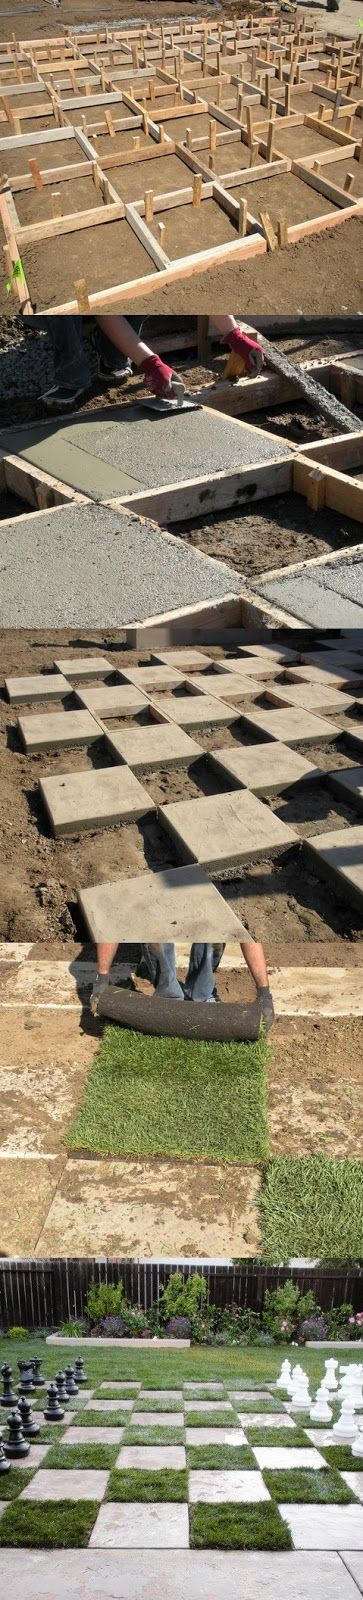 Make a Giant Chess Board In Your Backyard, hardscaping, landscaping, built in lawn games, cool idea if you have the space, maybe downsize it a bit